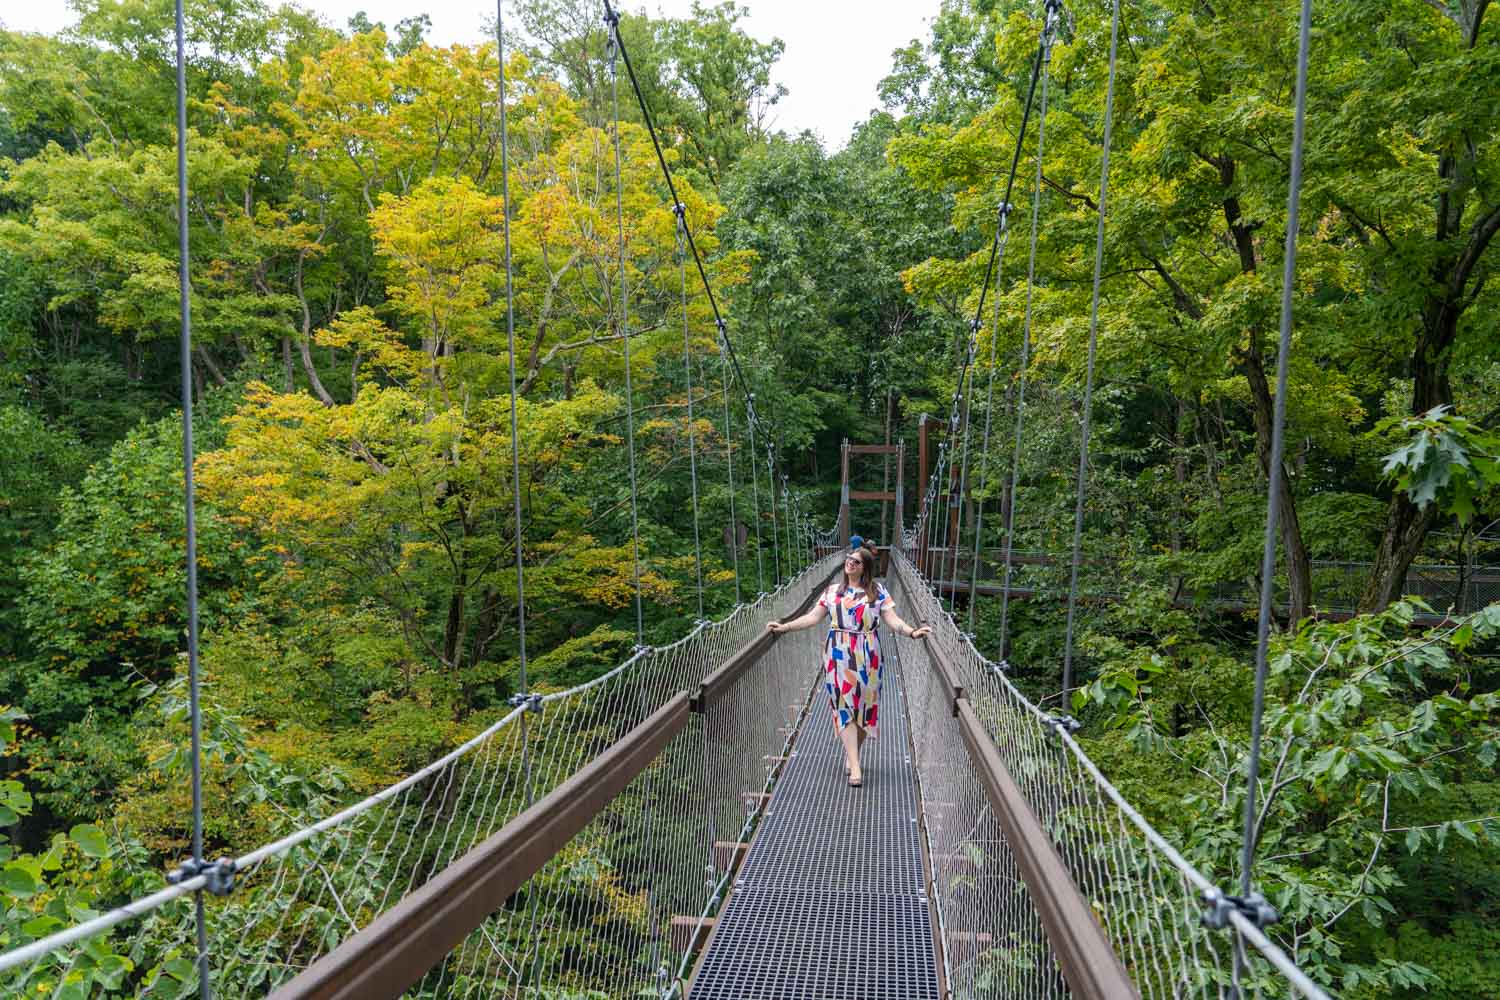 5 Things to Do When You Visit the Holden Arboretum